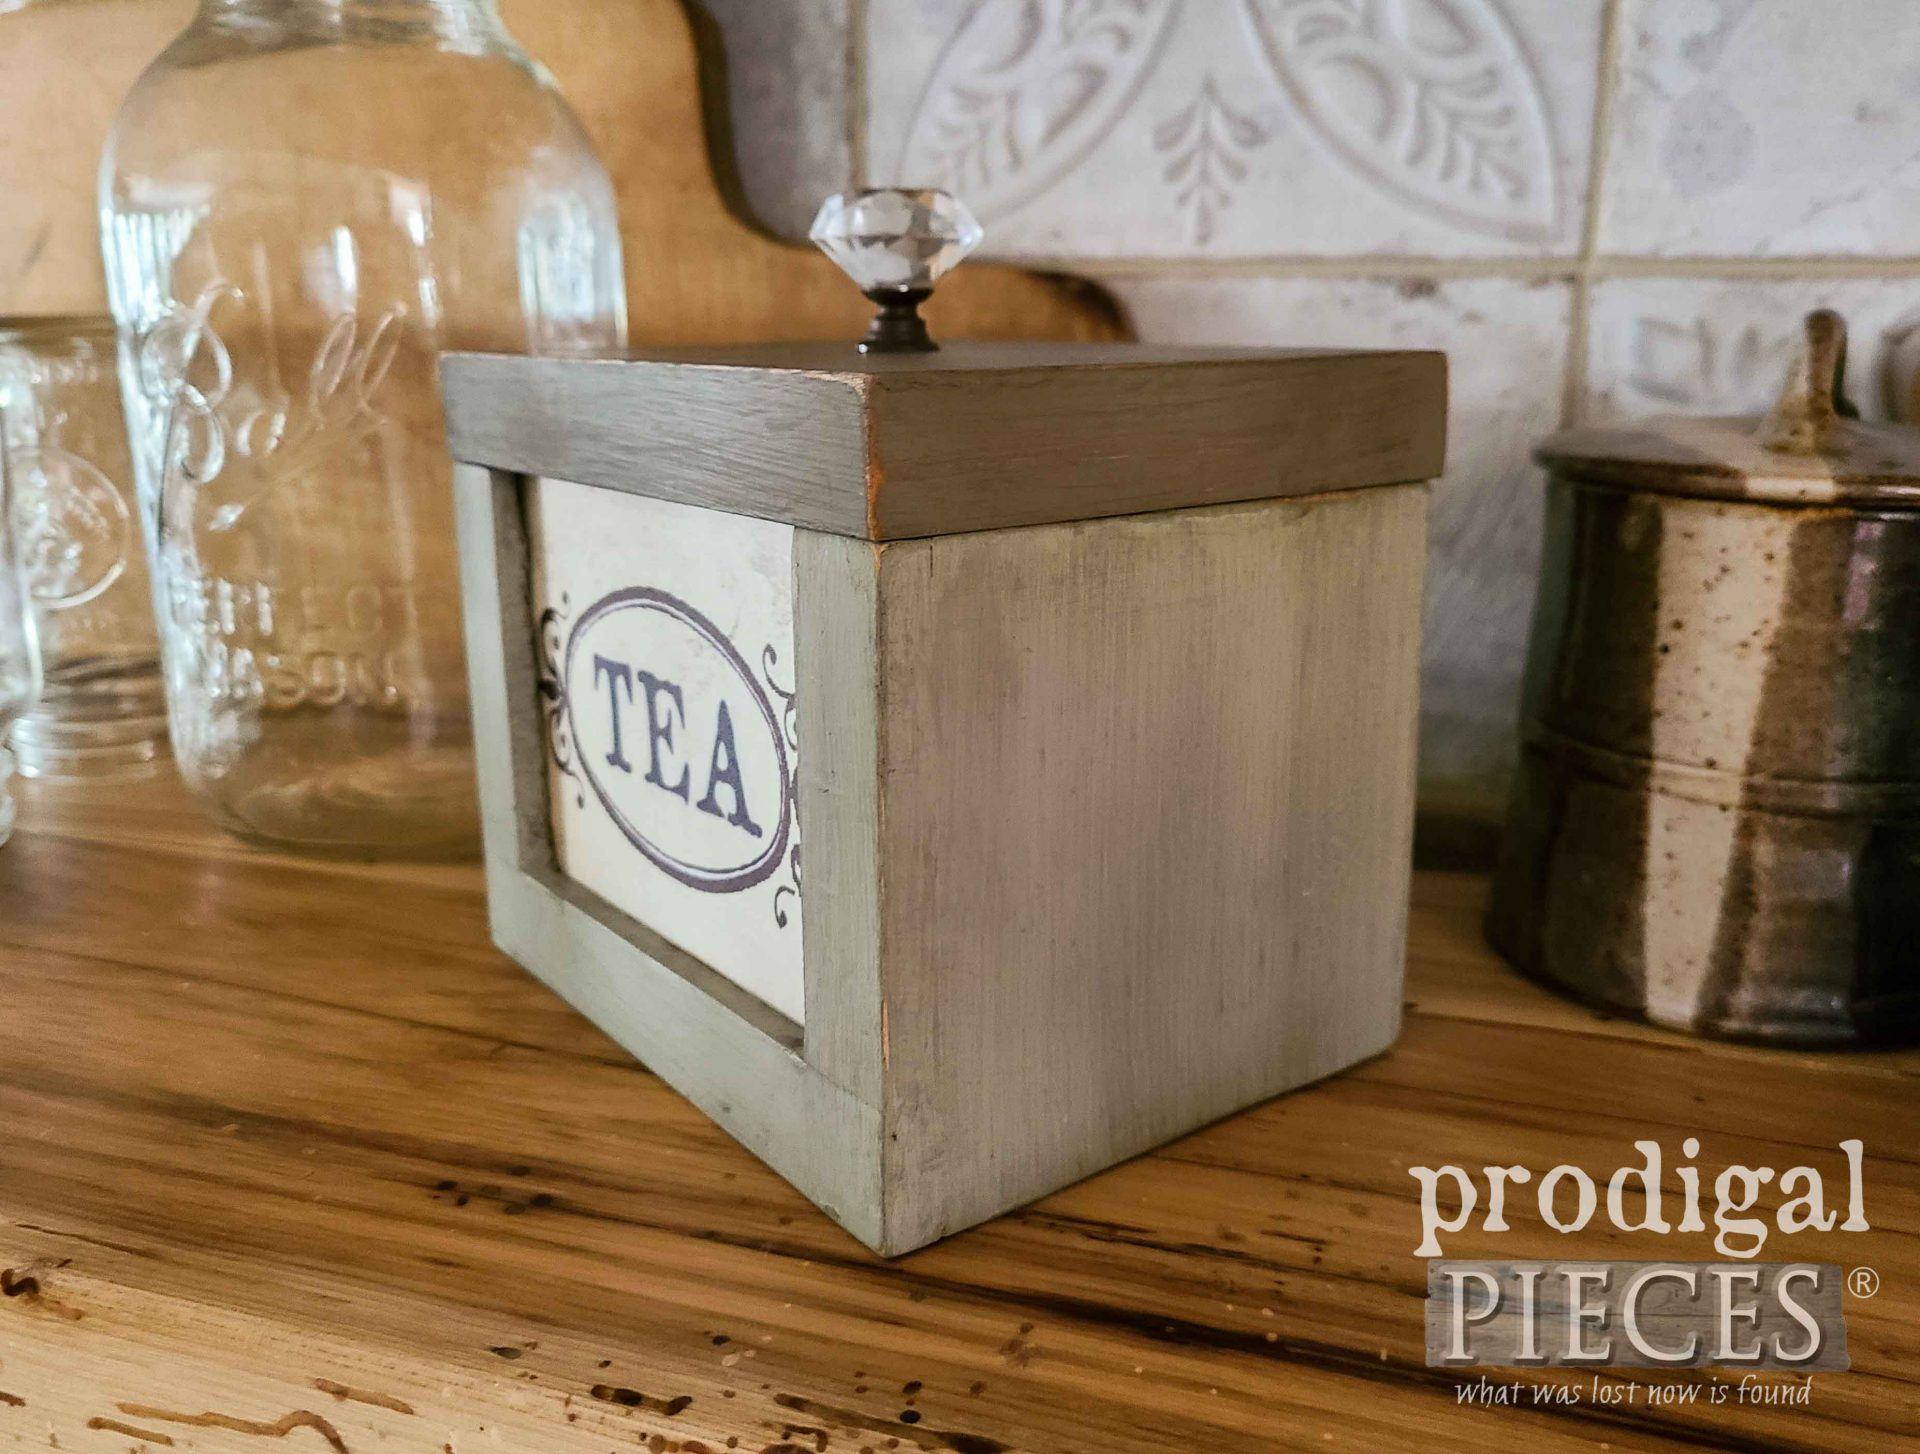 DIY Tea Box for Kitchen Decor by Prodigal Pieces | prodigalpieces.com #prodigalpieces #kitchen #farmhouse #diy #storage